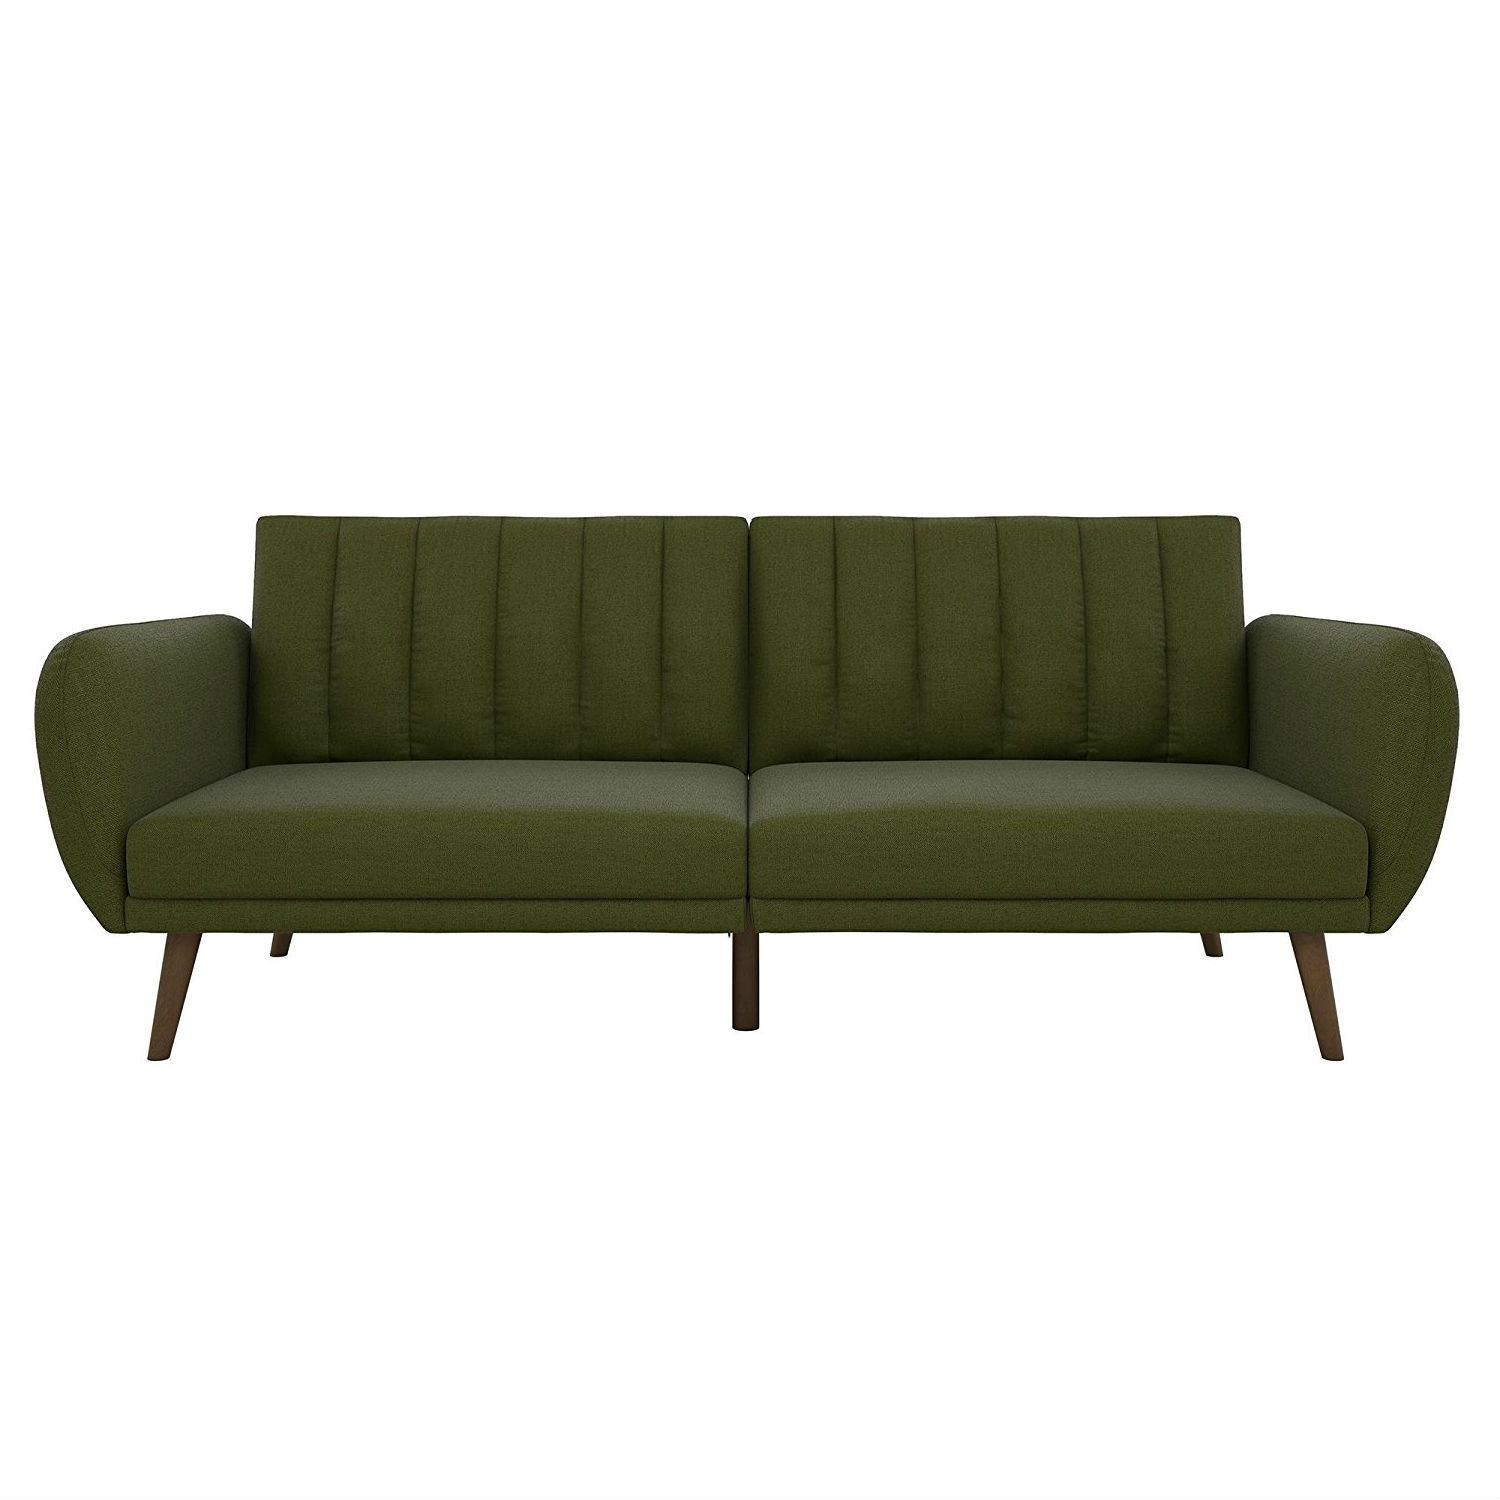 Green Linen Upholstered Futon Sofa Bed With Mid Century Style Wooden Legs